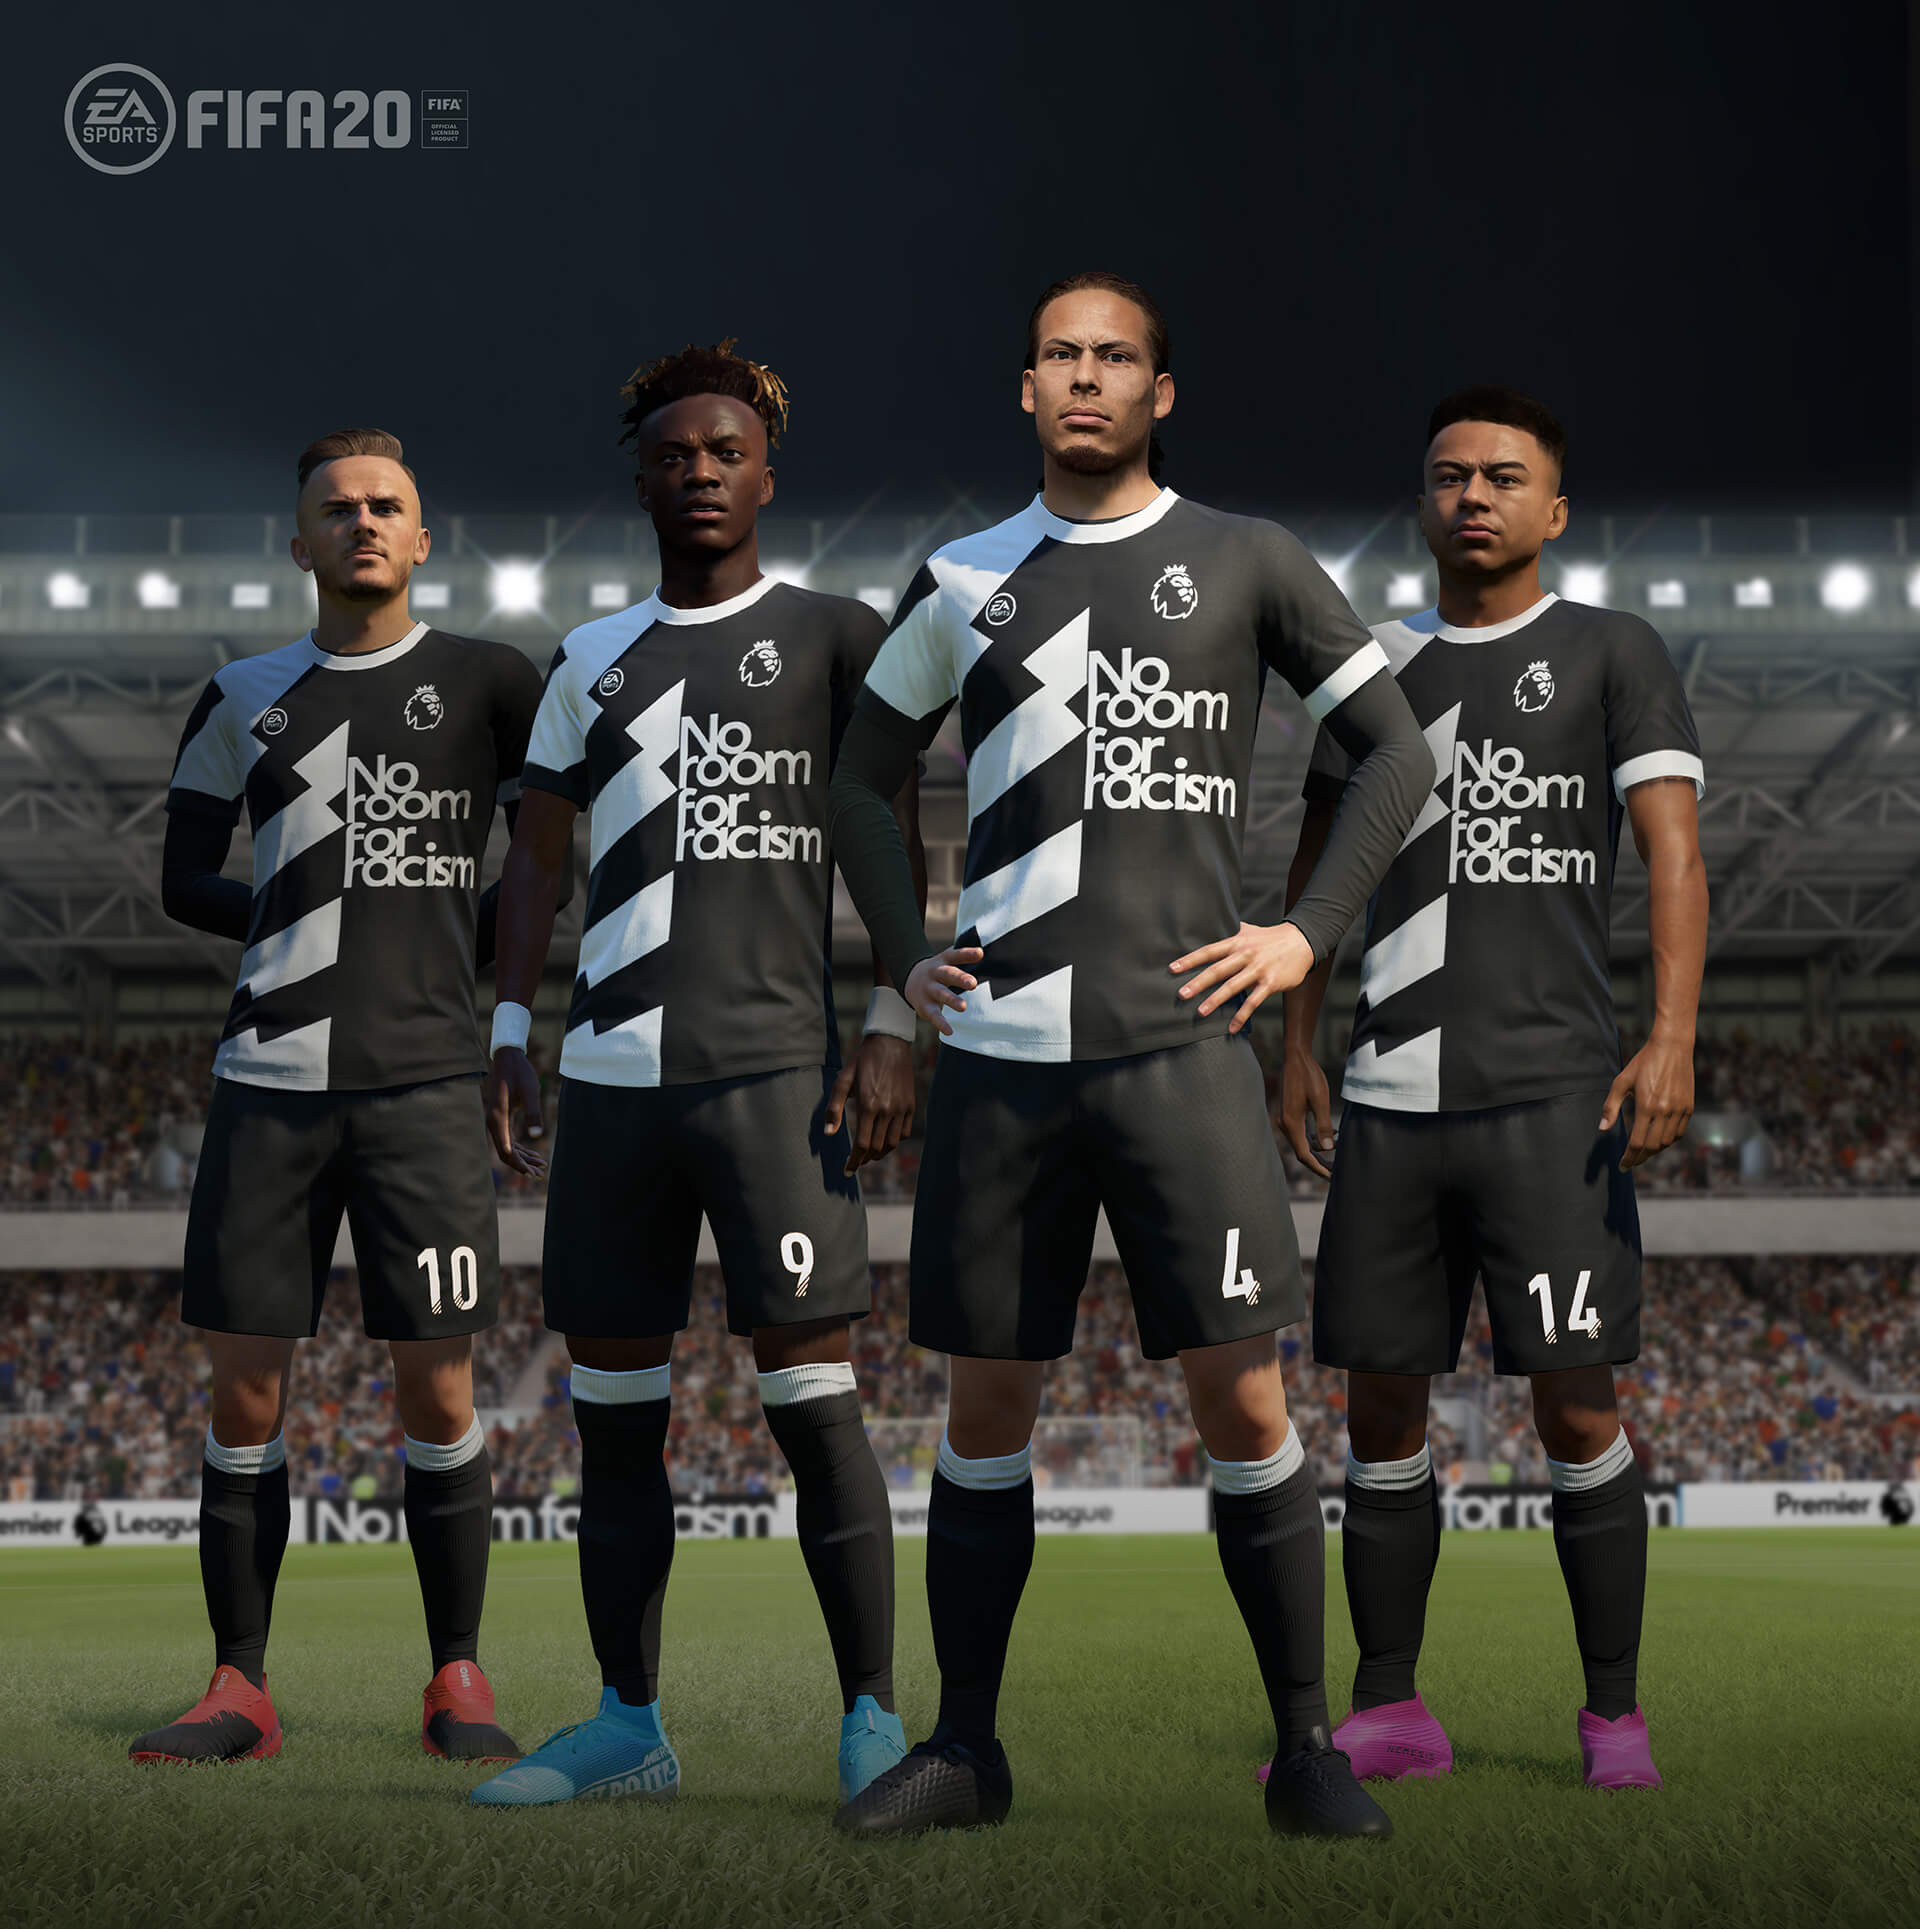 FIFA 20 s'associe avec la campagne No Room for Racism de la Premier League